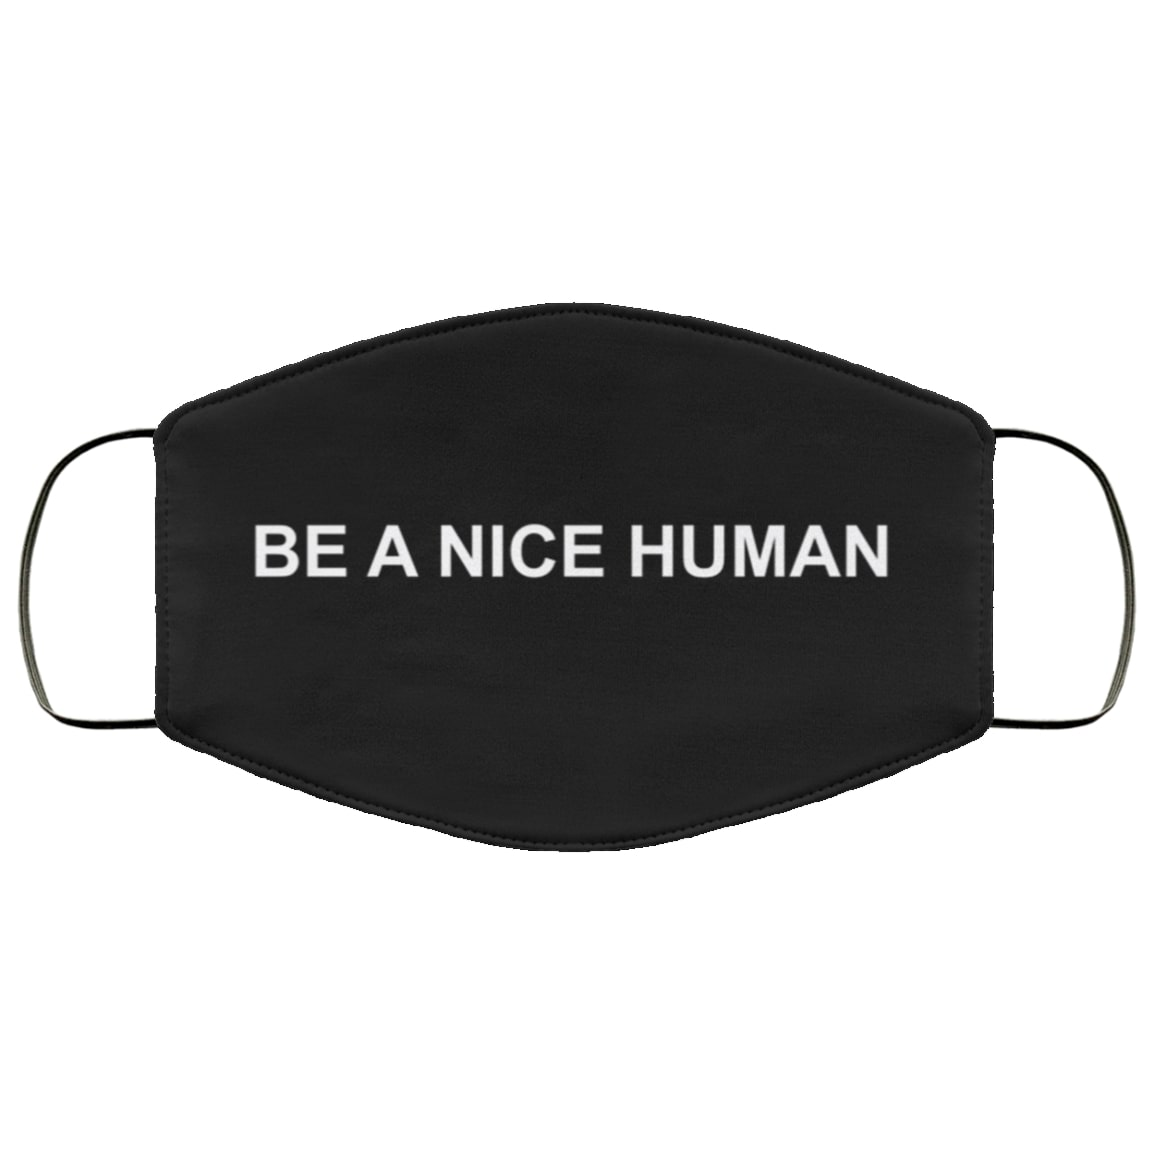 Be a nice human full over printed face mask 4